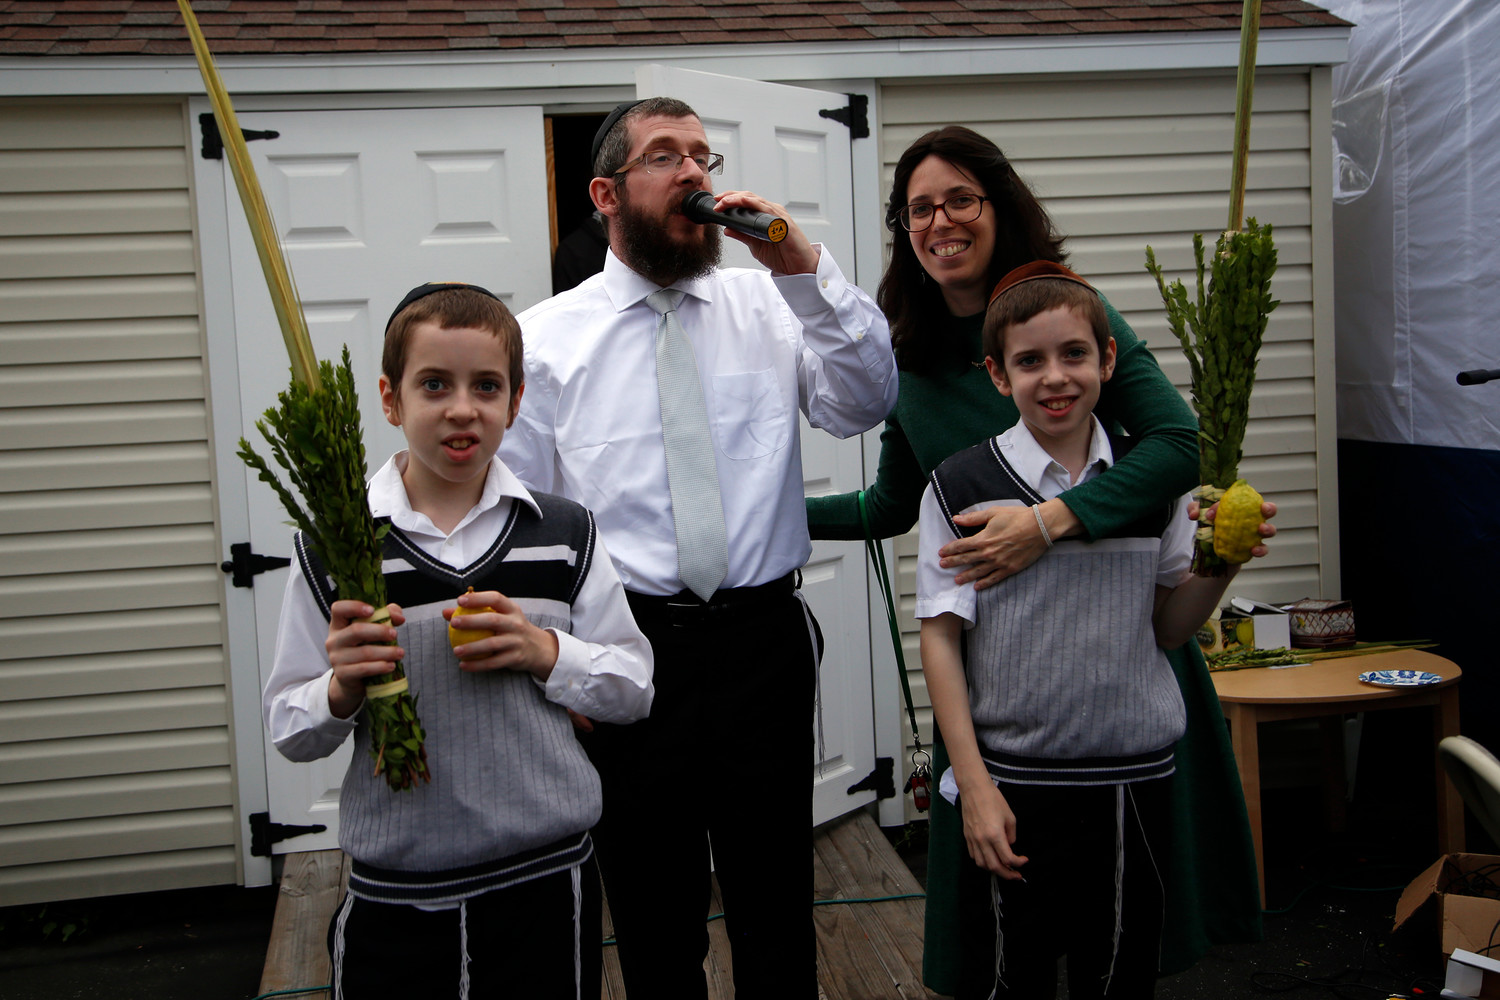 The Kramers and their sons led Simchat Torah festivities this year at the Chabad Center.